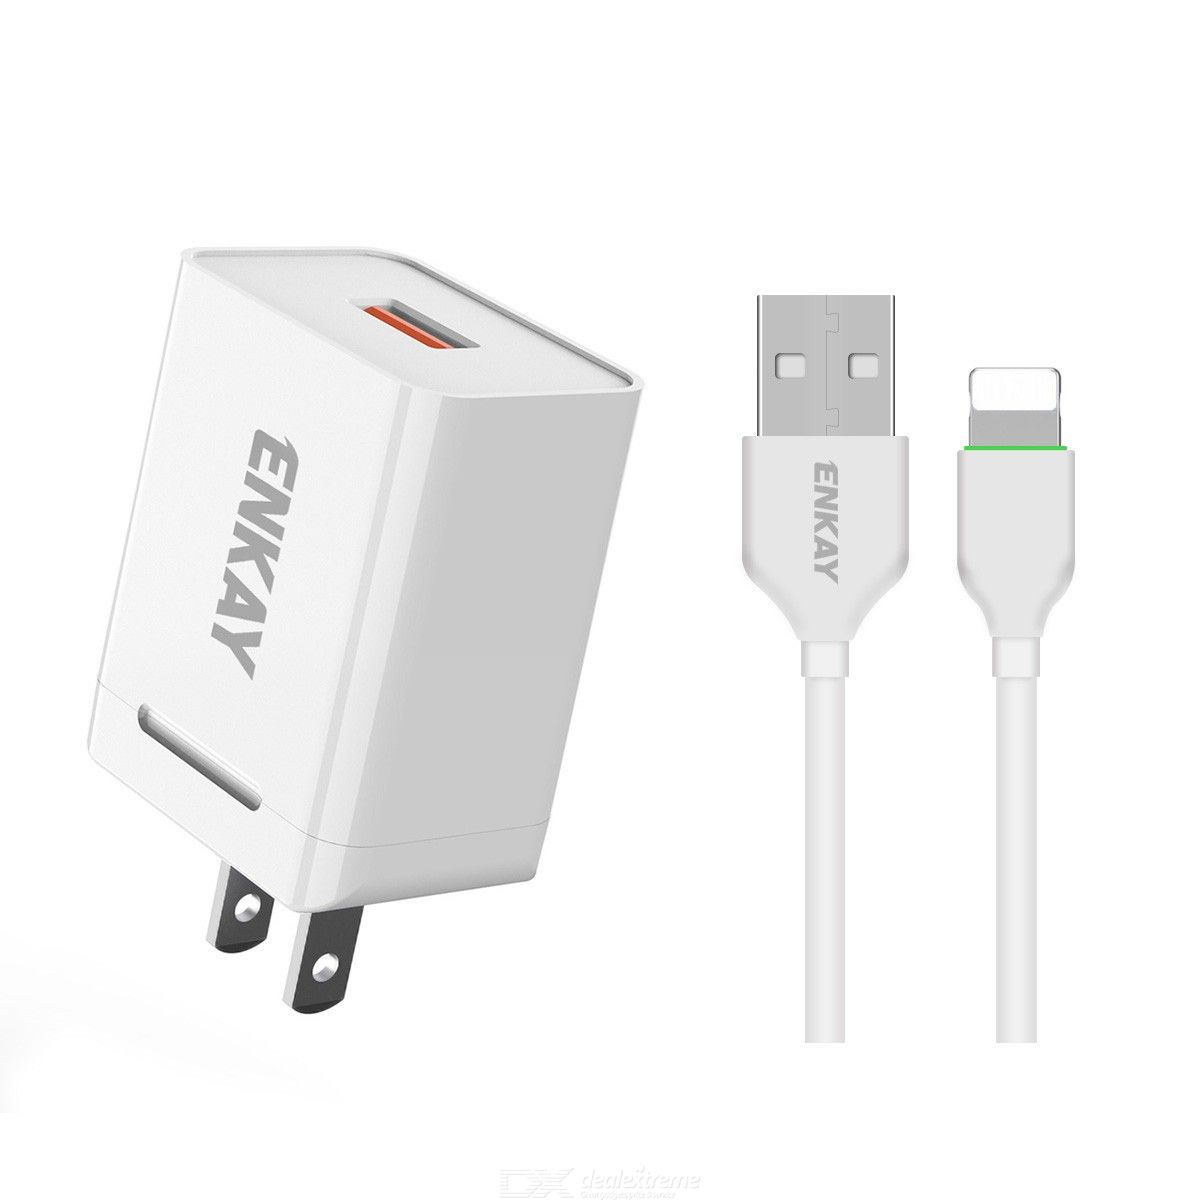 Hat-prince enkay 18w usb power adapter qc3.0 pd super fast charging us plug portable travel charger with 8 pin cable